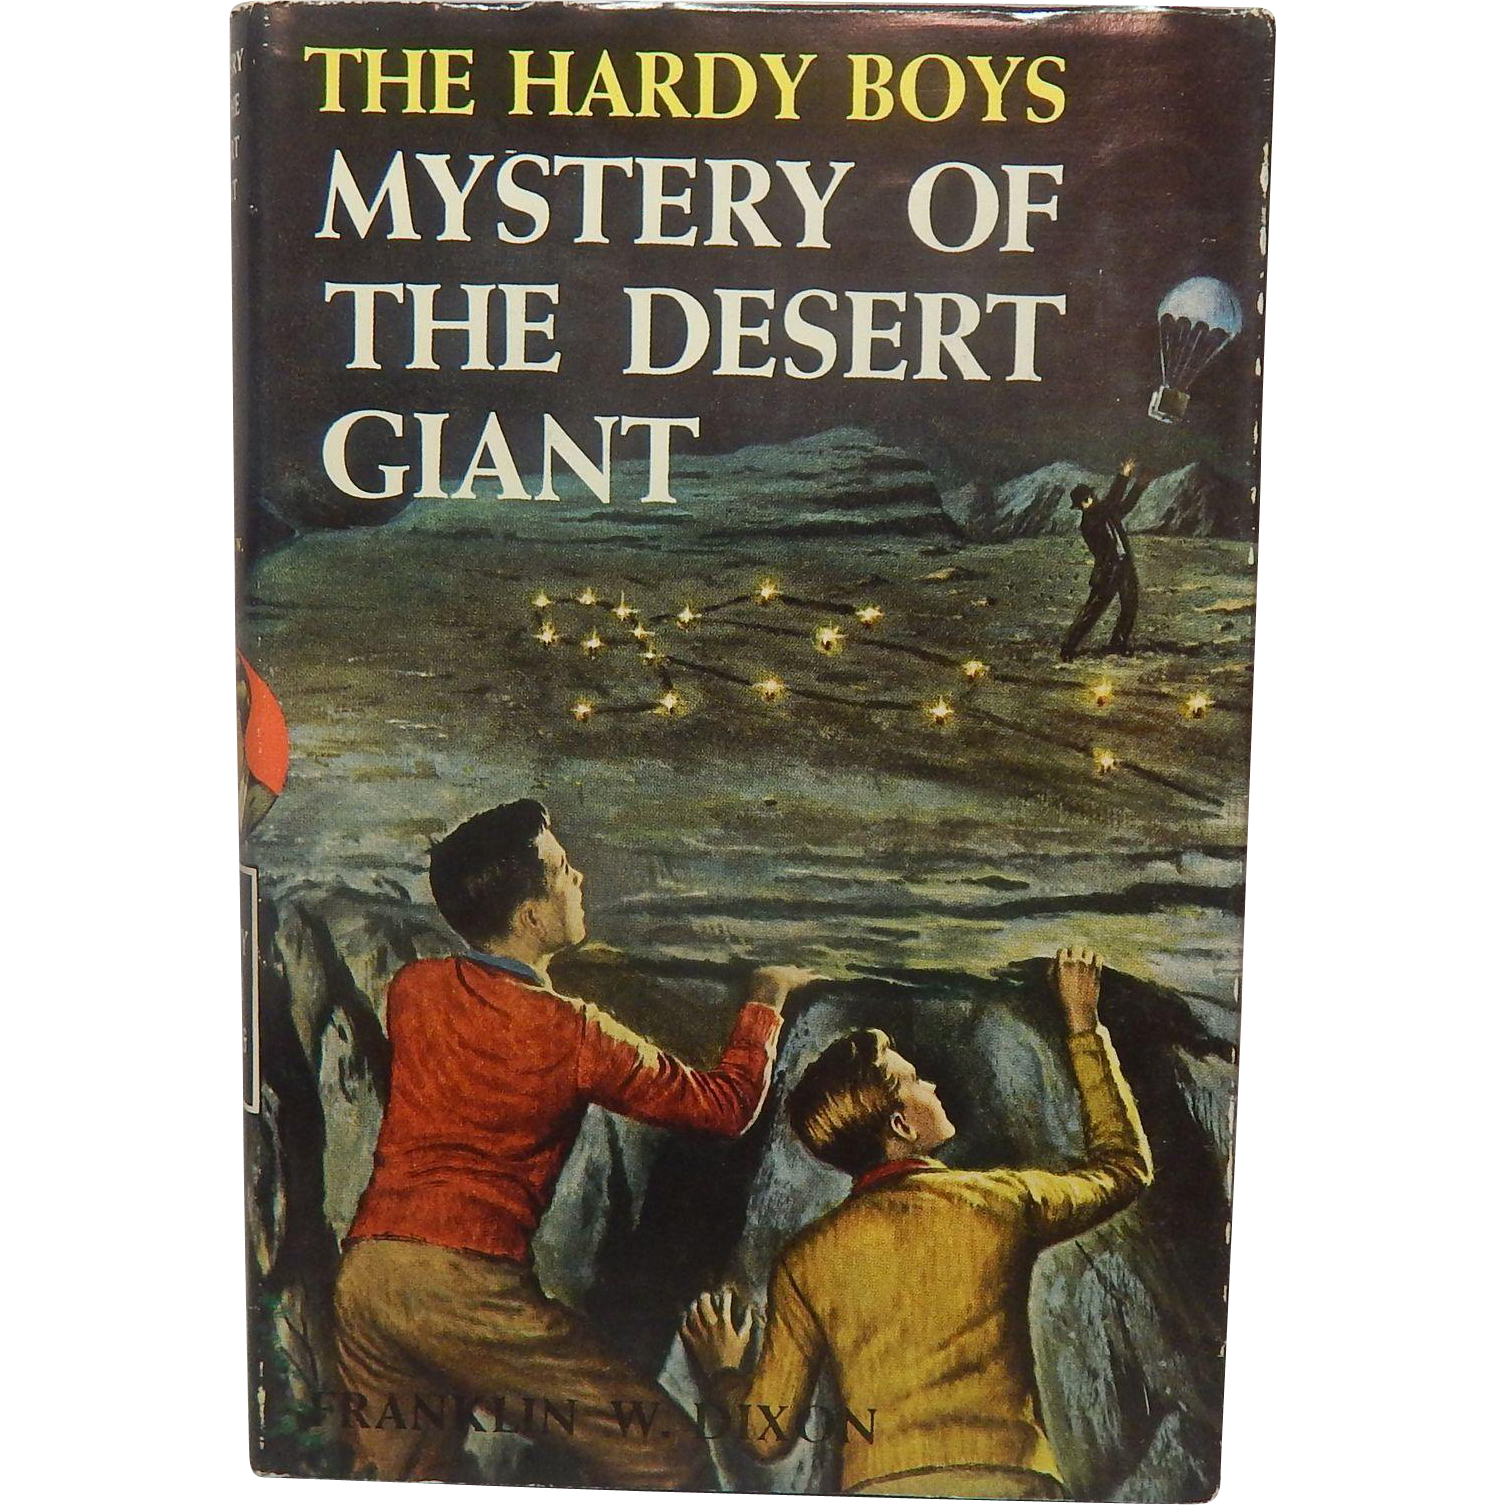 The Hardy Boys Mystery Of The Desert Giant